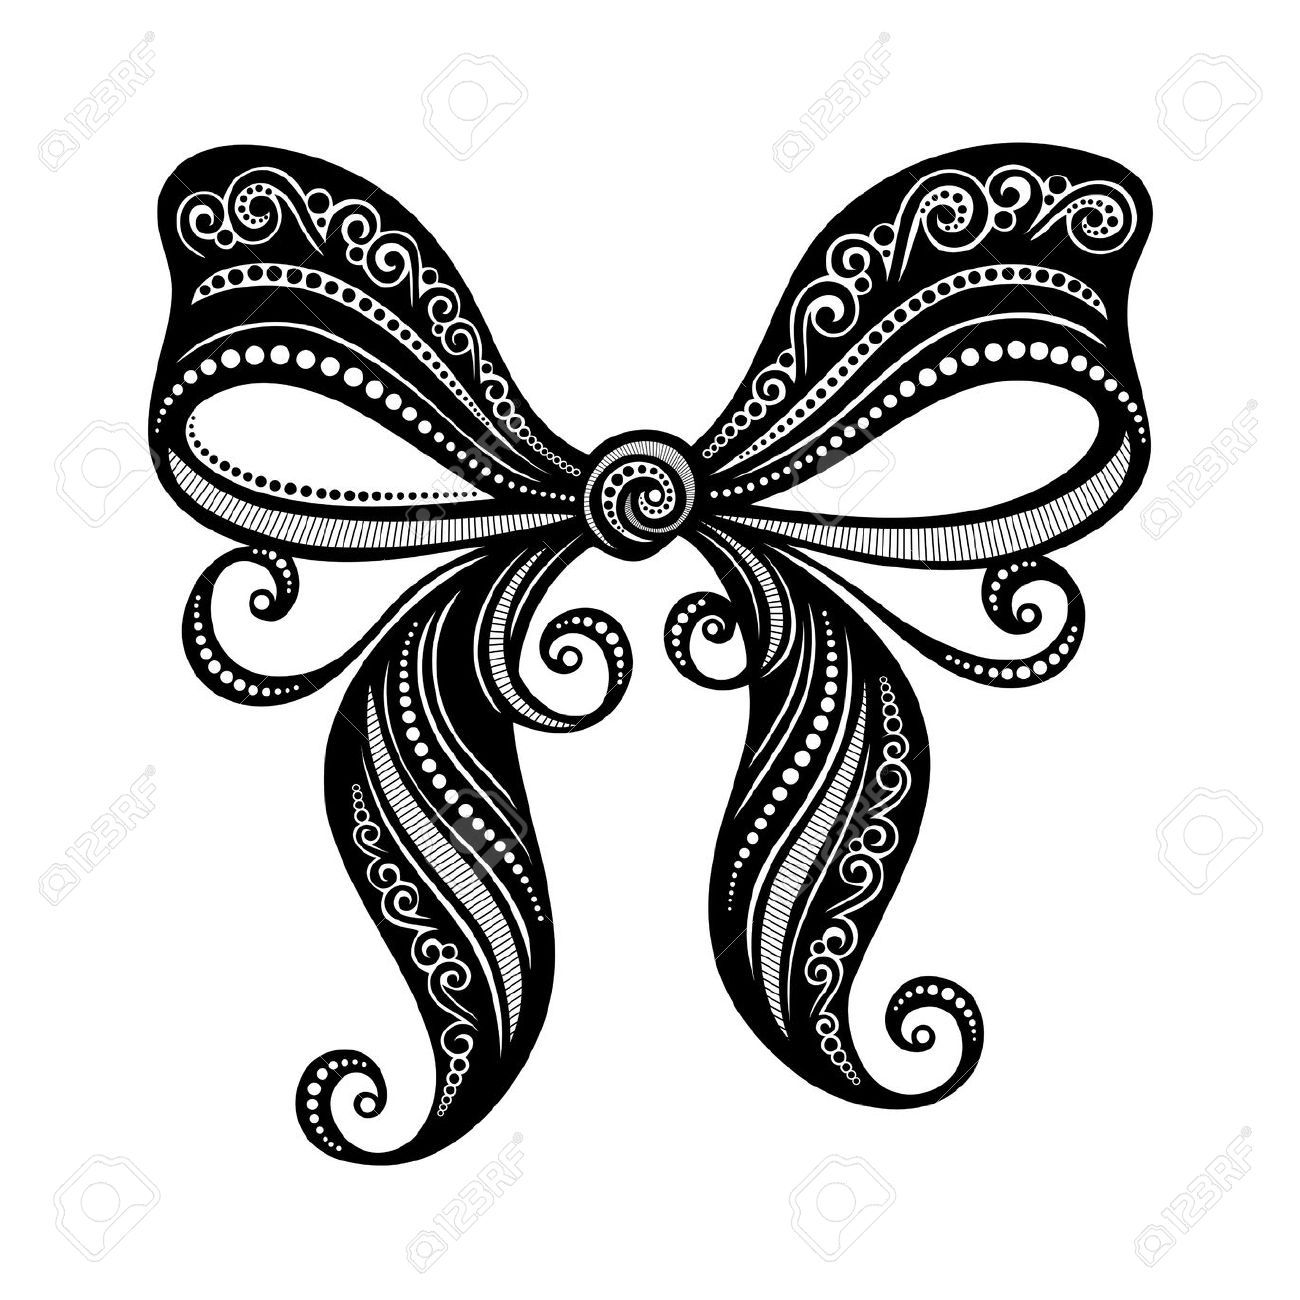 Image result for bow. Bows clipart vector